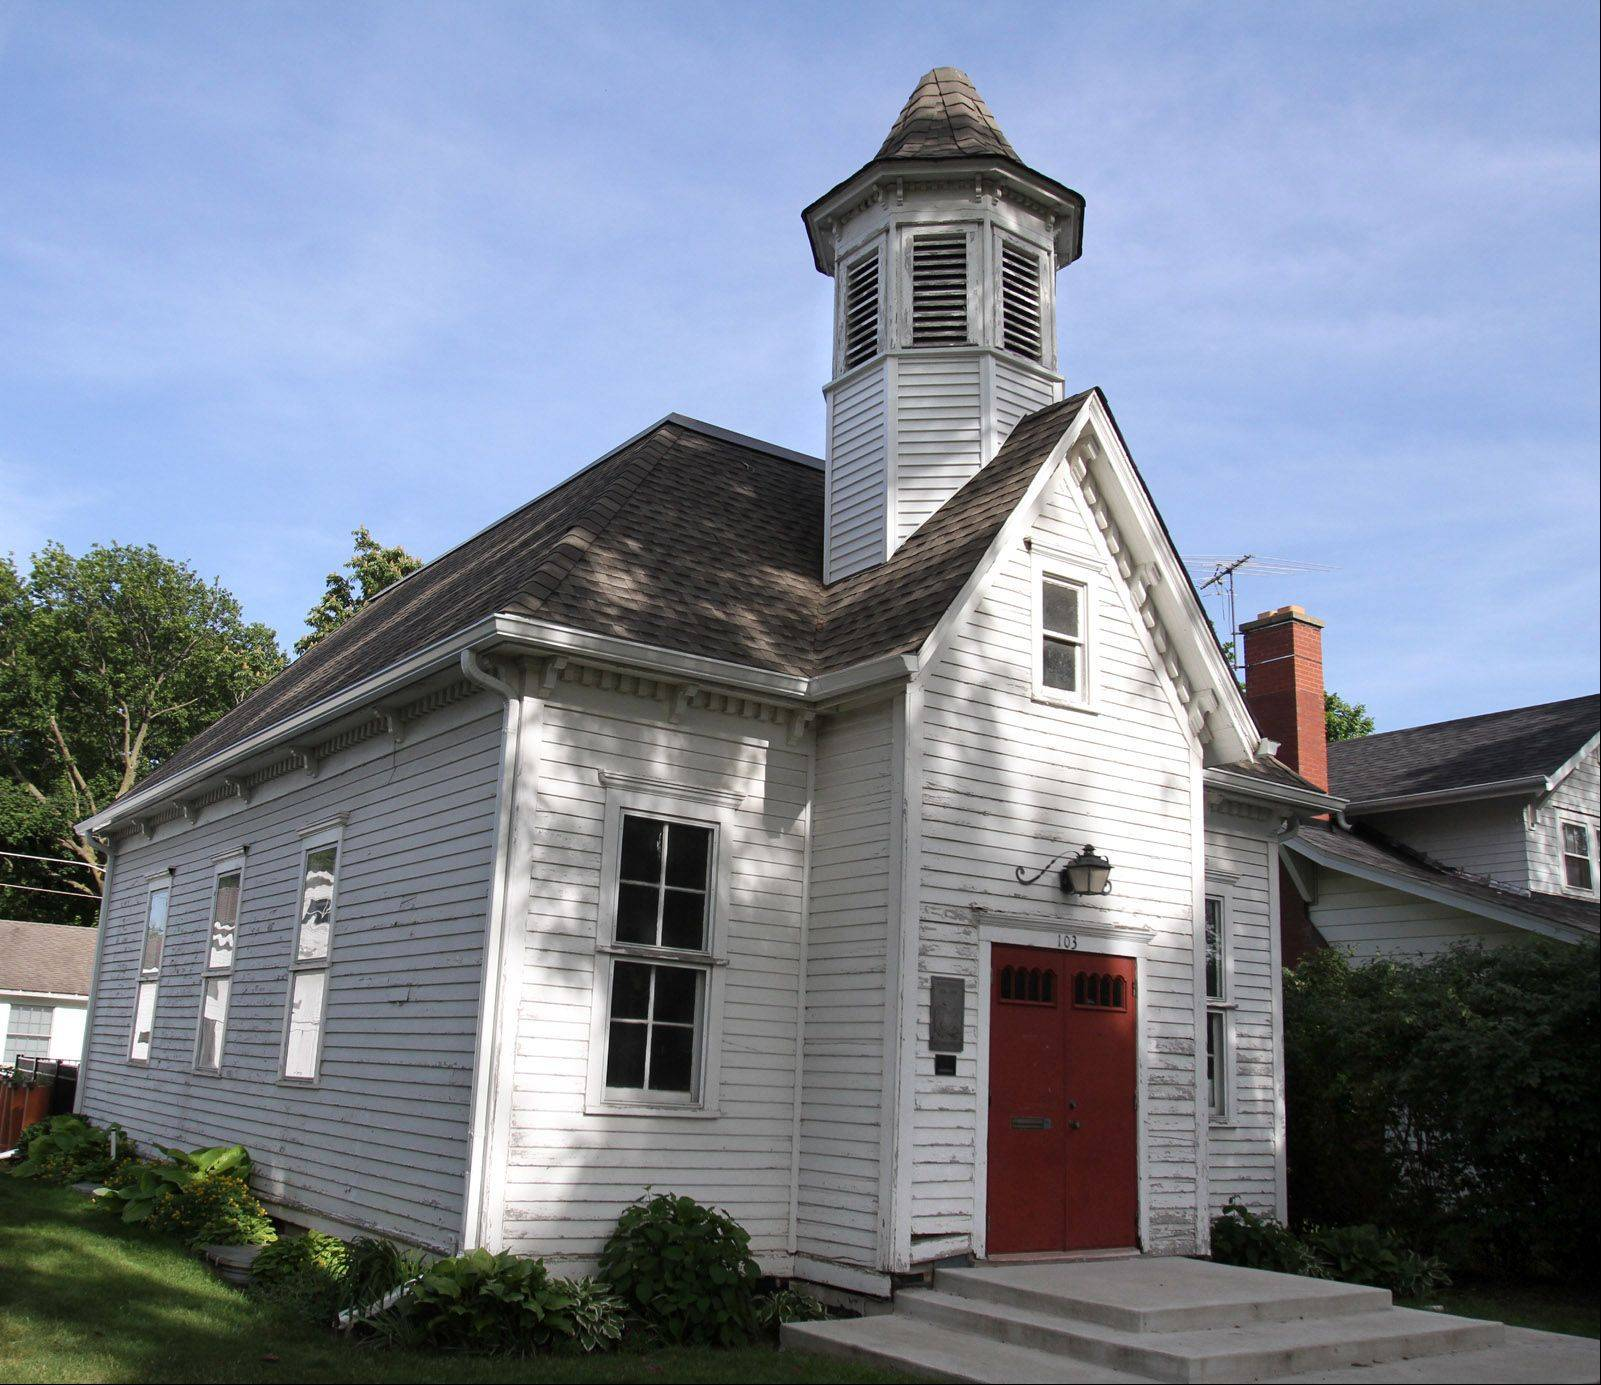 Congregants of St. Paul Lutheran Church met in Central School until their church was built. The building also served as the church school for a time.